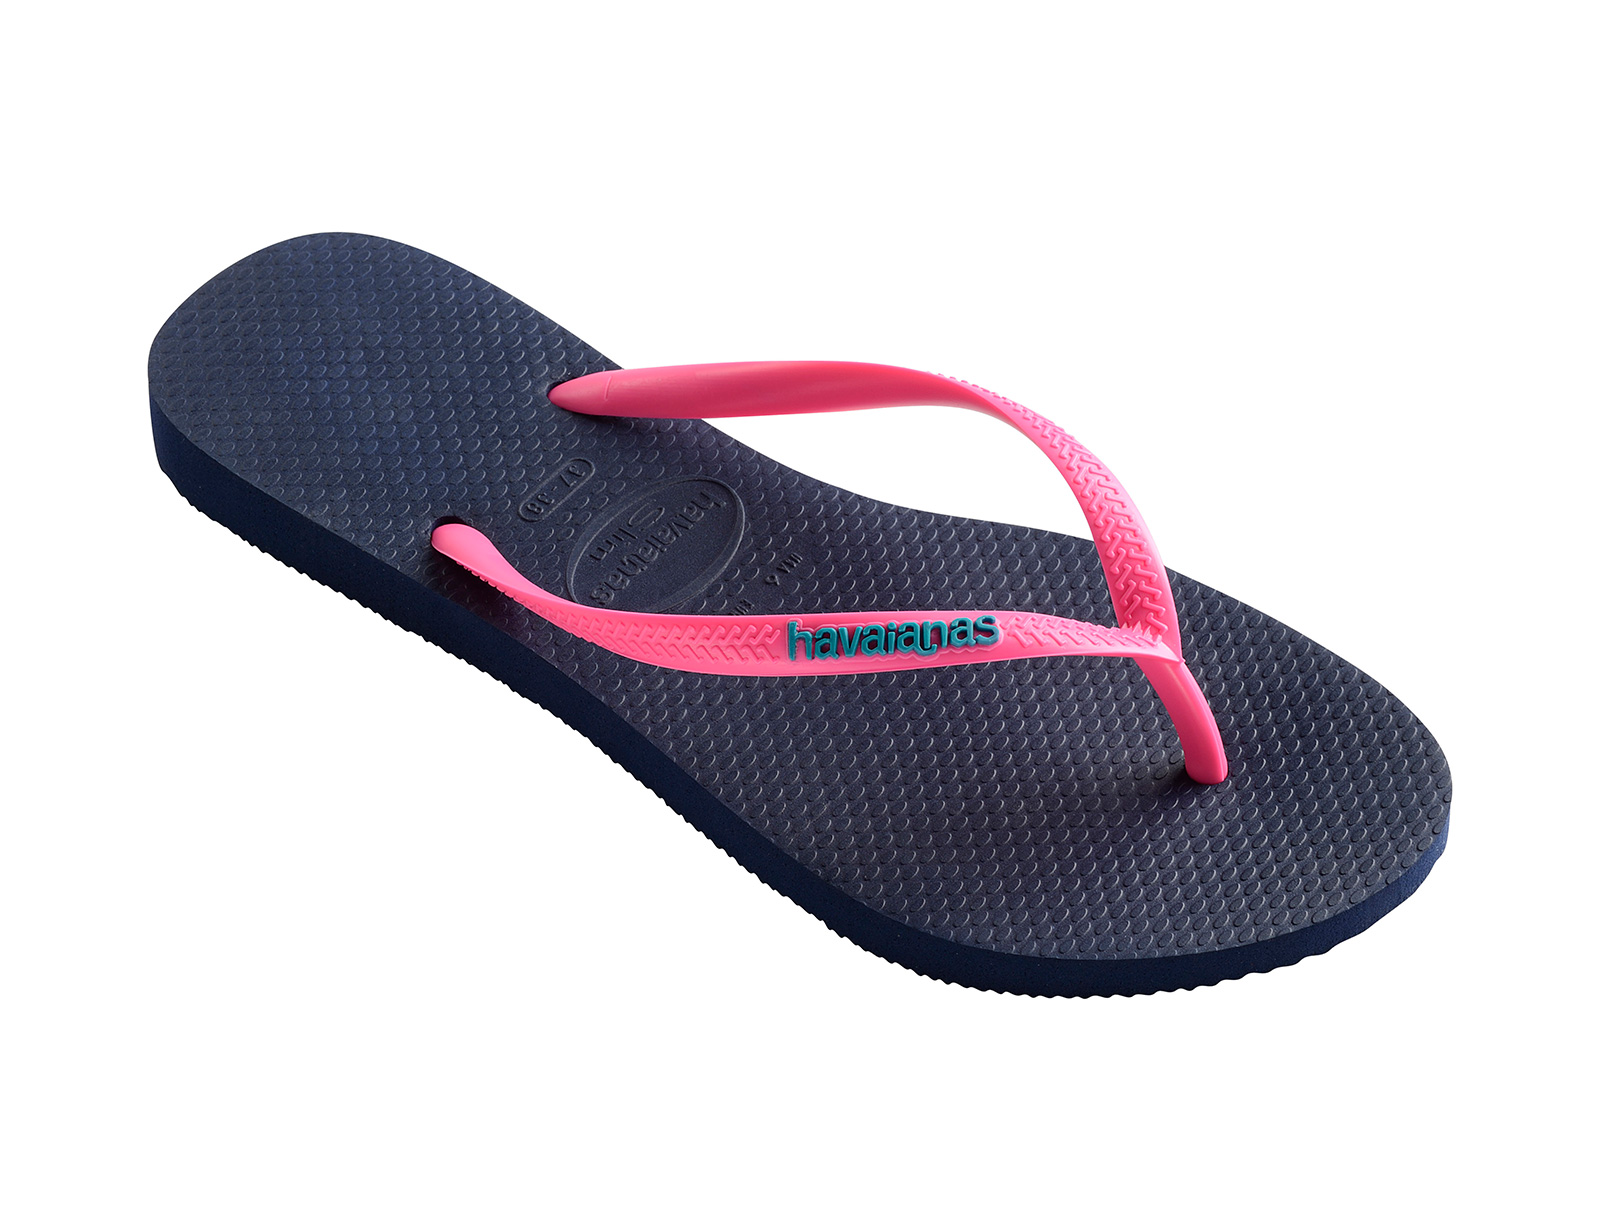 Havaianas Havaianas Slim Flip Flops Navy Blue in China cheap online KCBCLZVDn